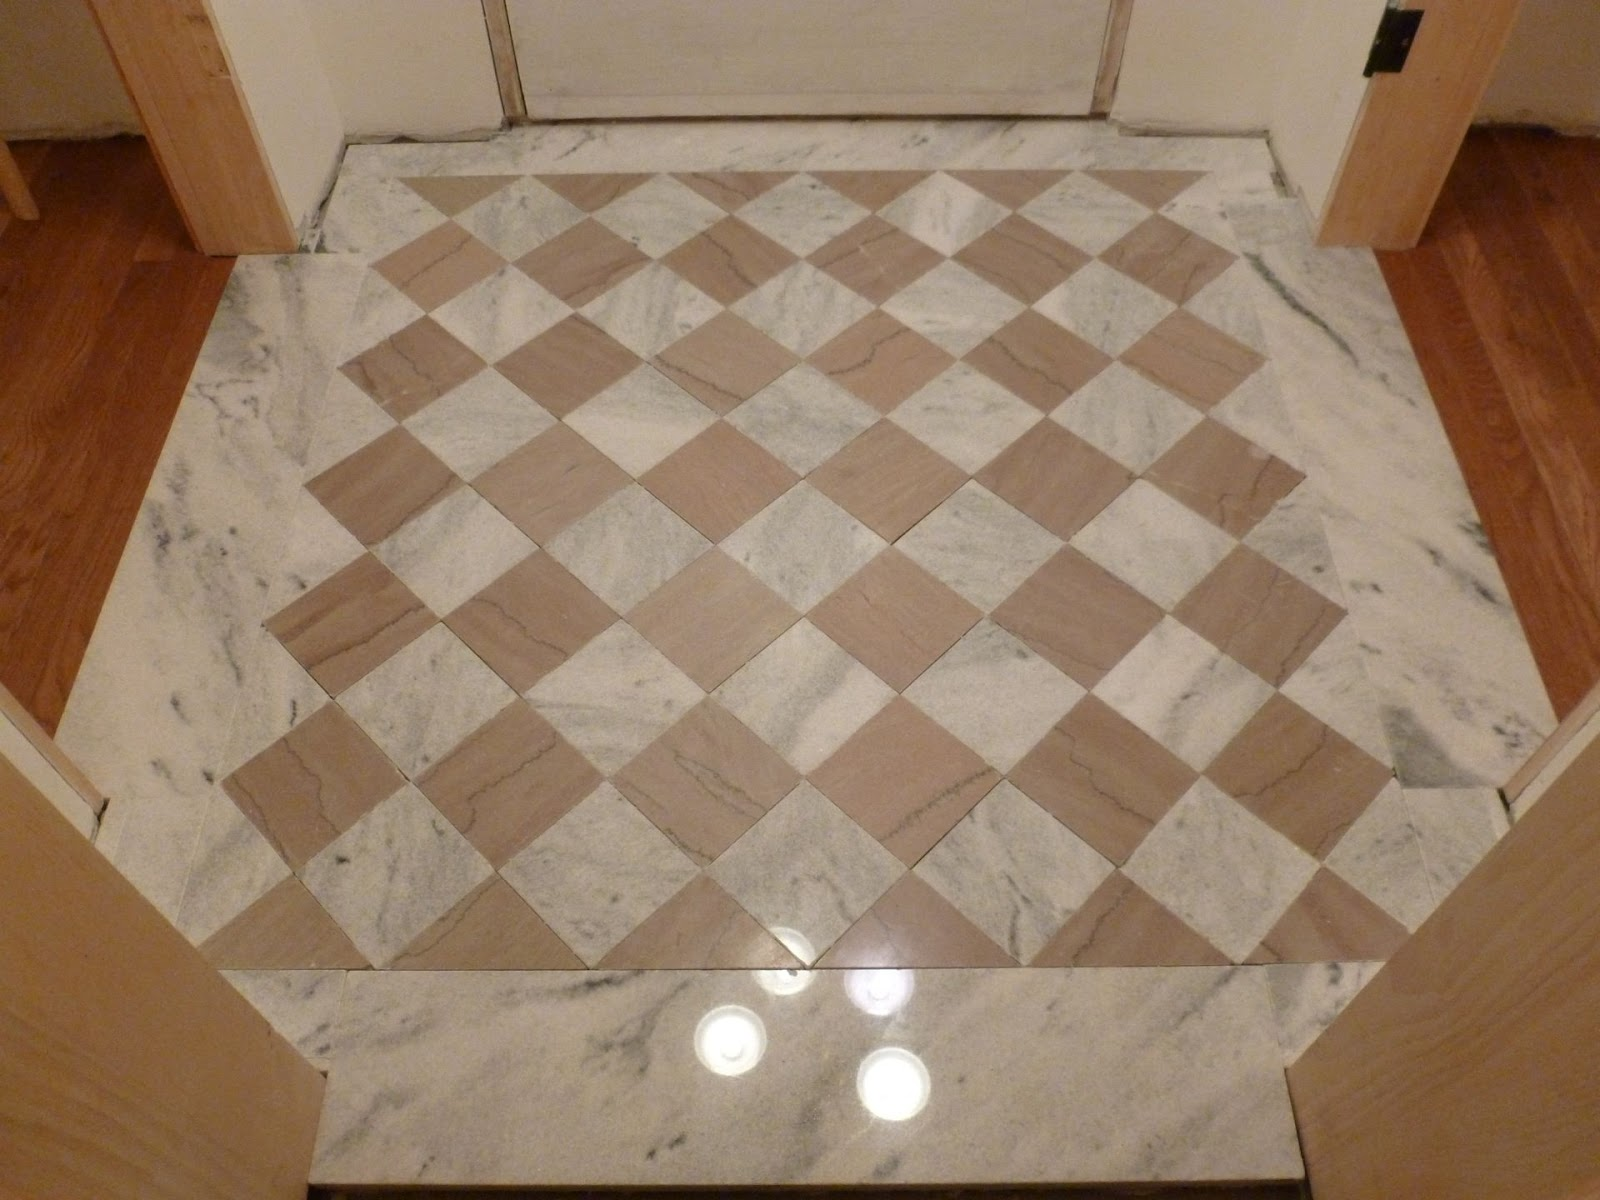 Handyman in the iowa illinois quad cities installing a very marble tile installed in the floor but without the grout the customer didnt intend for grout to be used however mainly because the white tiles had a dailygadgetfo Gallery